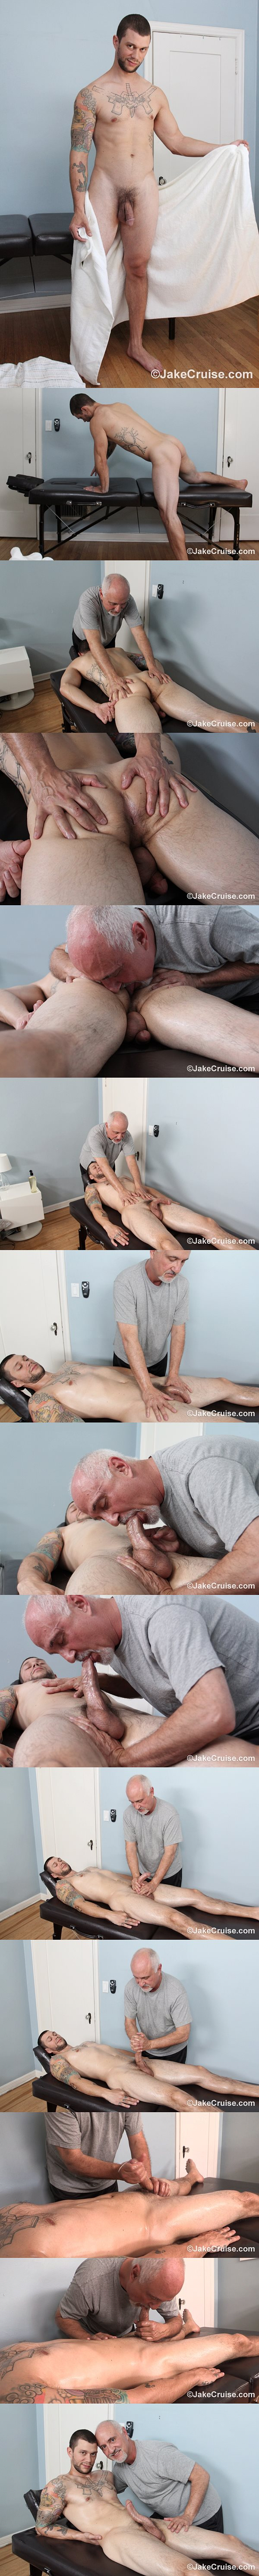 Hot hung muscle hunk Mike Fox gets massaged and jerked off at Jakecruise